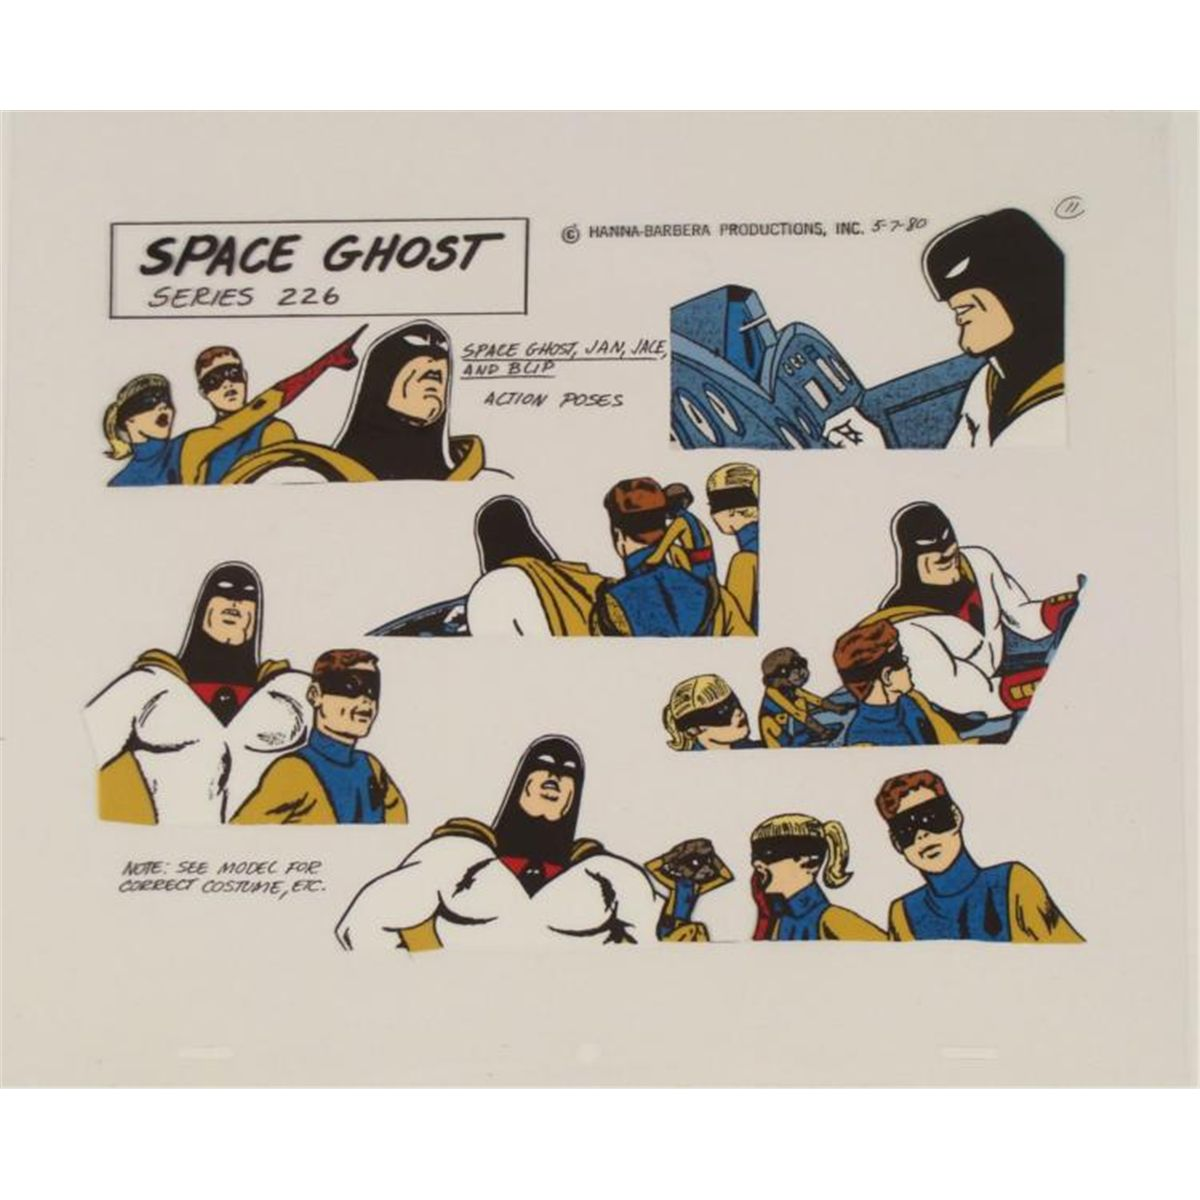 Space ghost jan porn softcore movie